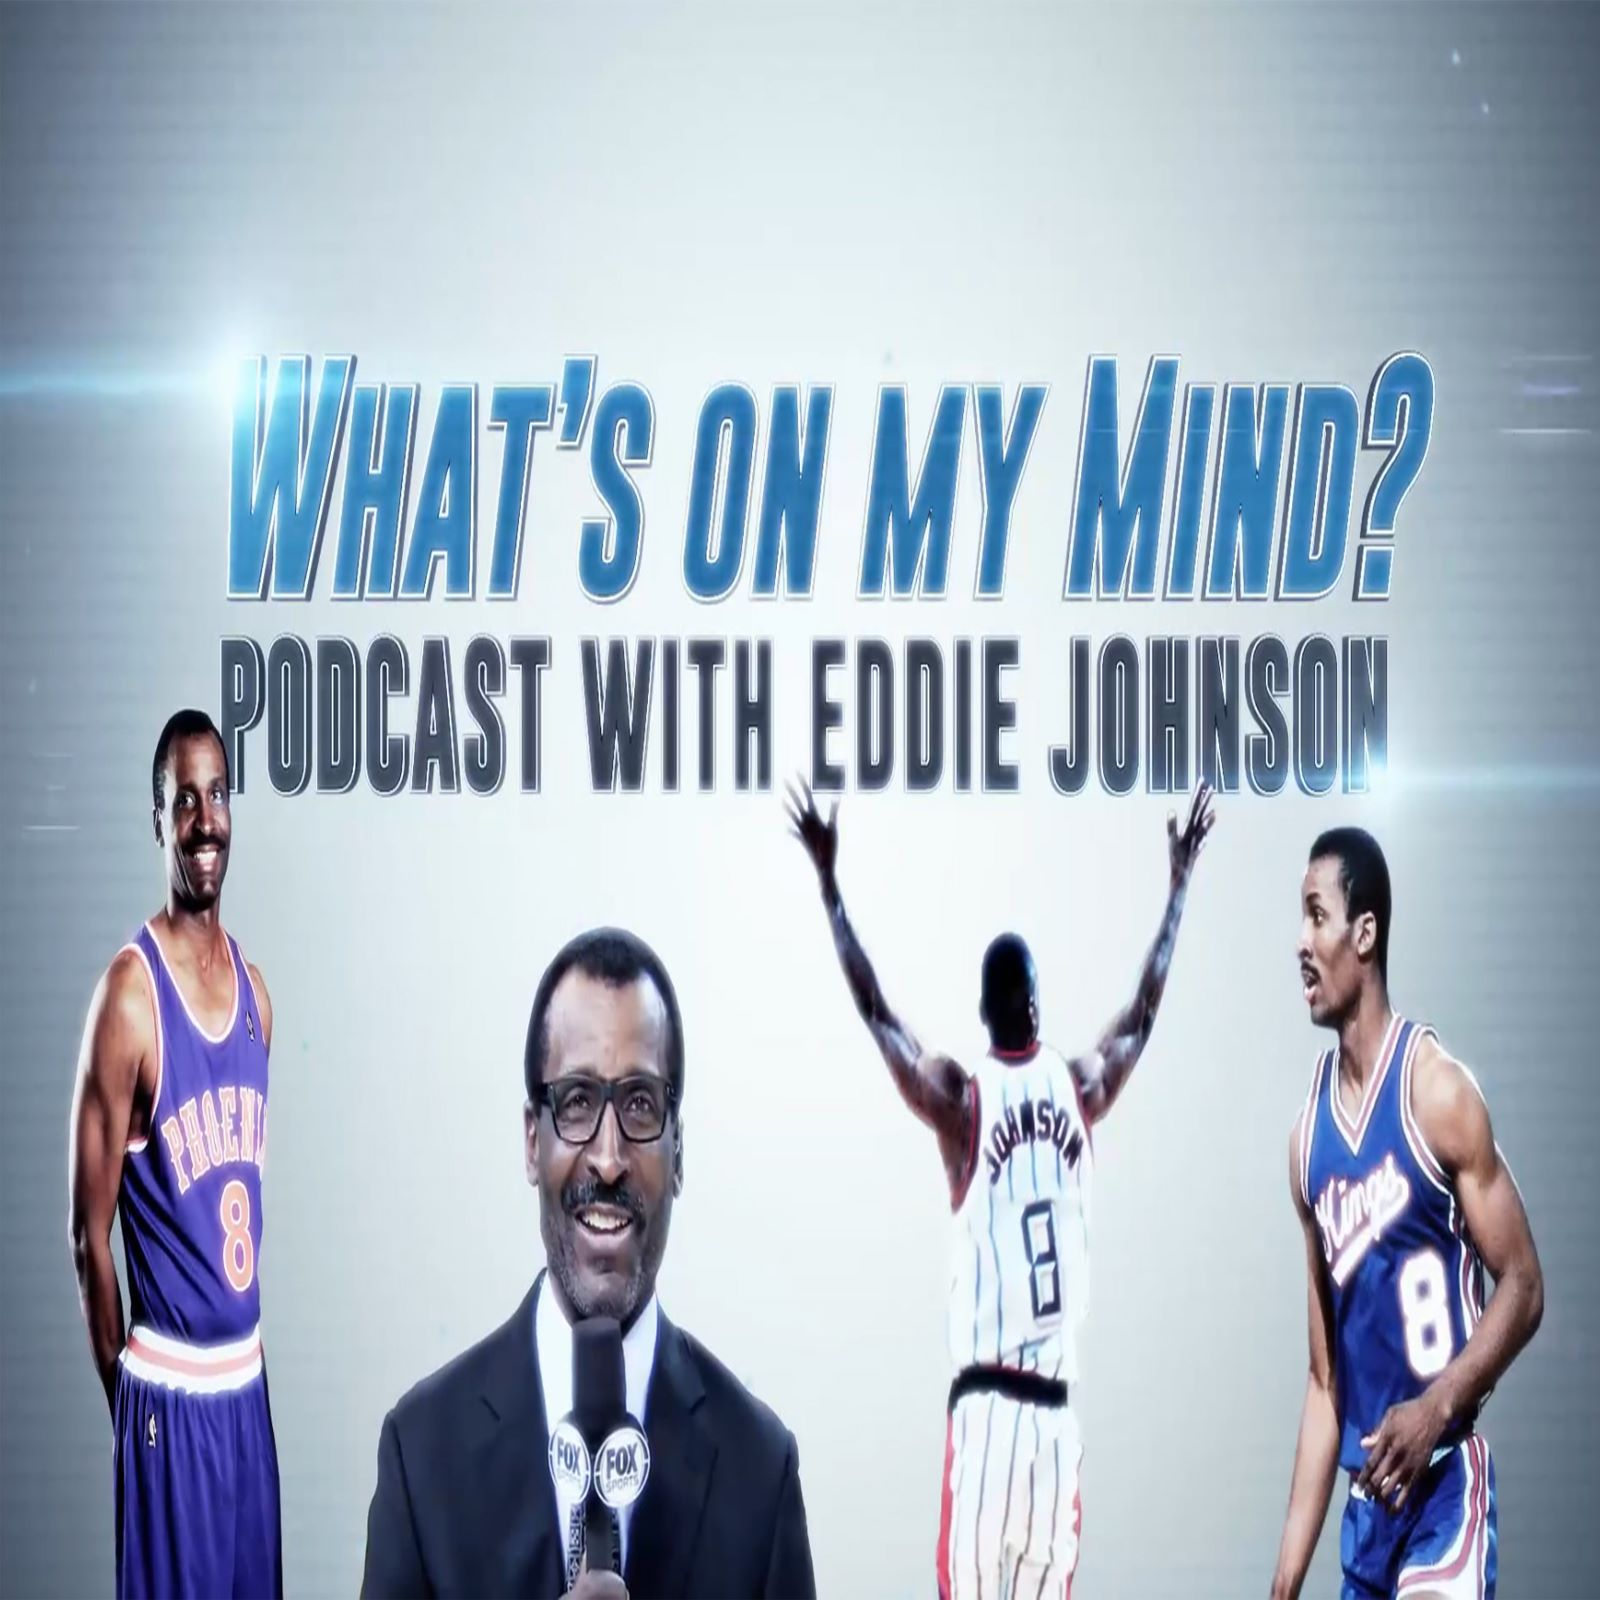 What's on my Mind? With Eddie Johnson